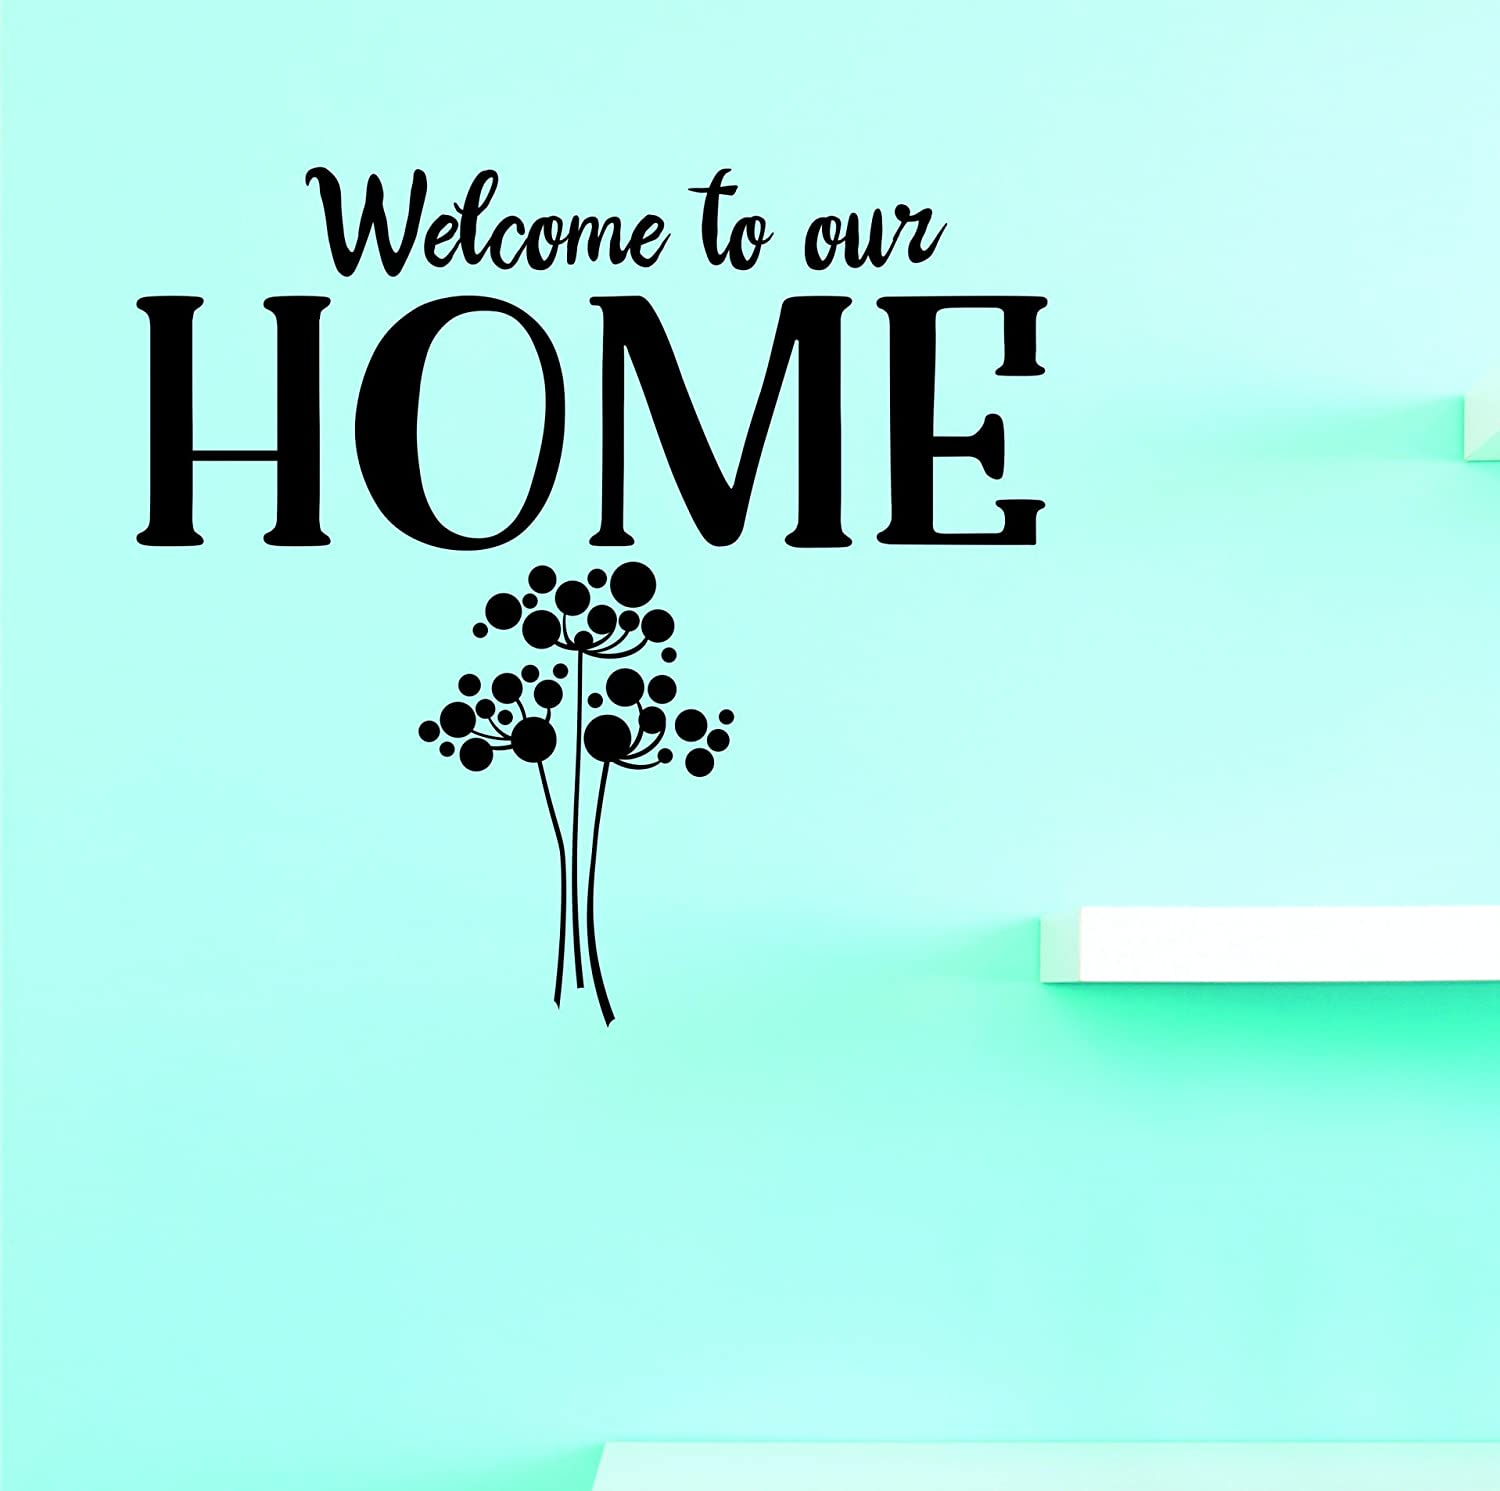 Design with Vinyl JER 2049 3A Hot New Decals Welcome to Our Home Wall Art Size x 18 Inches Color Black 18 x 18